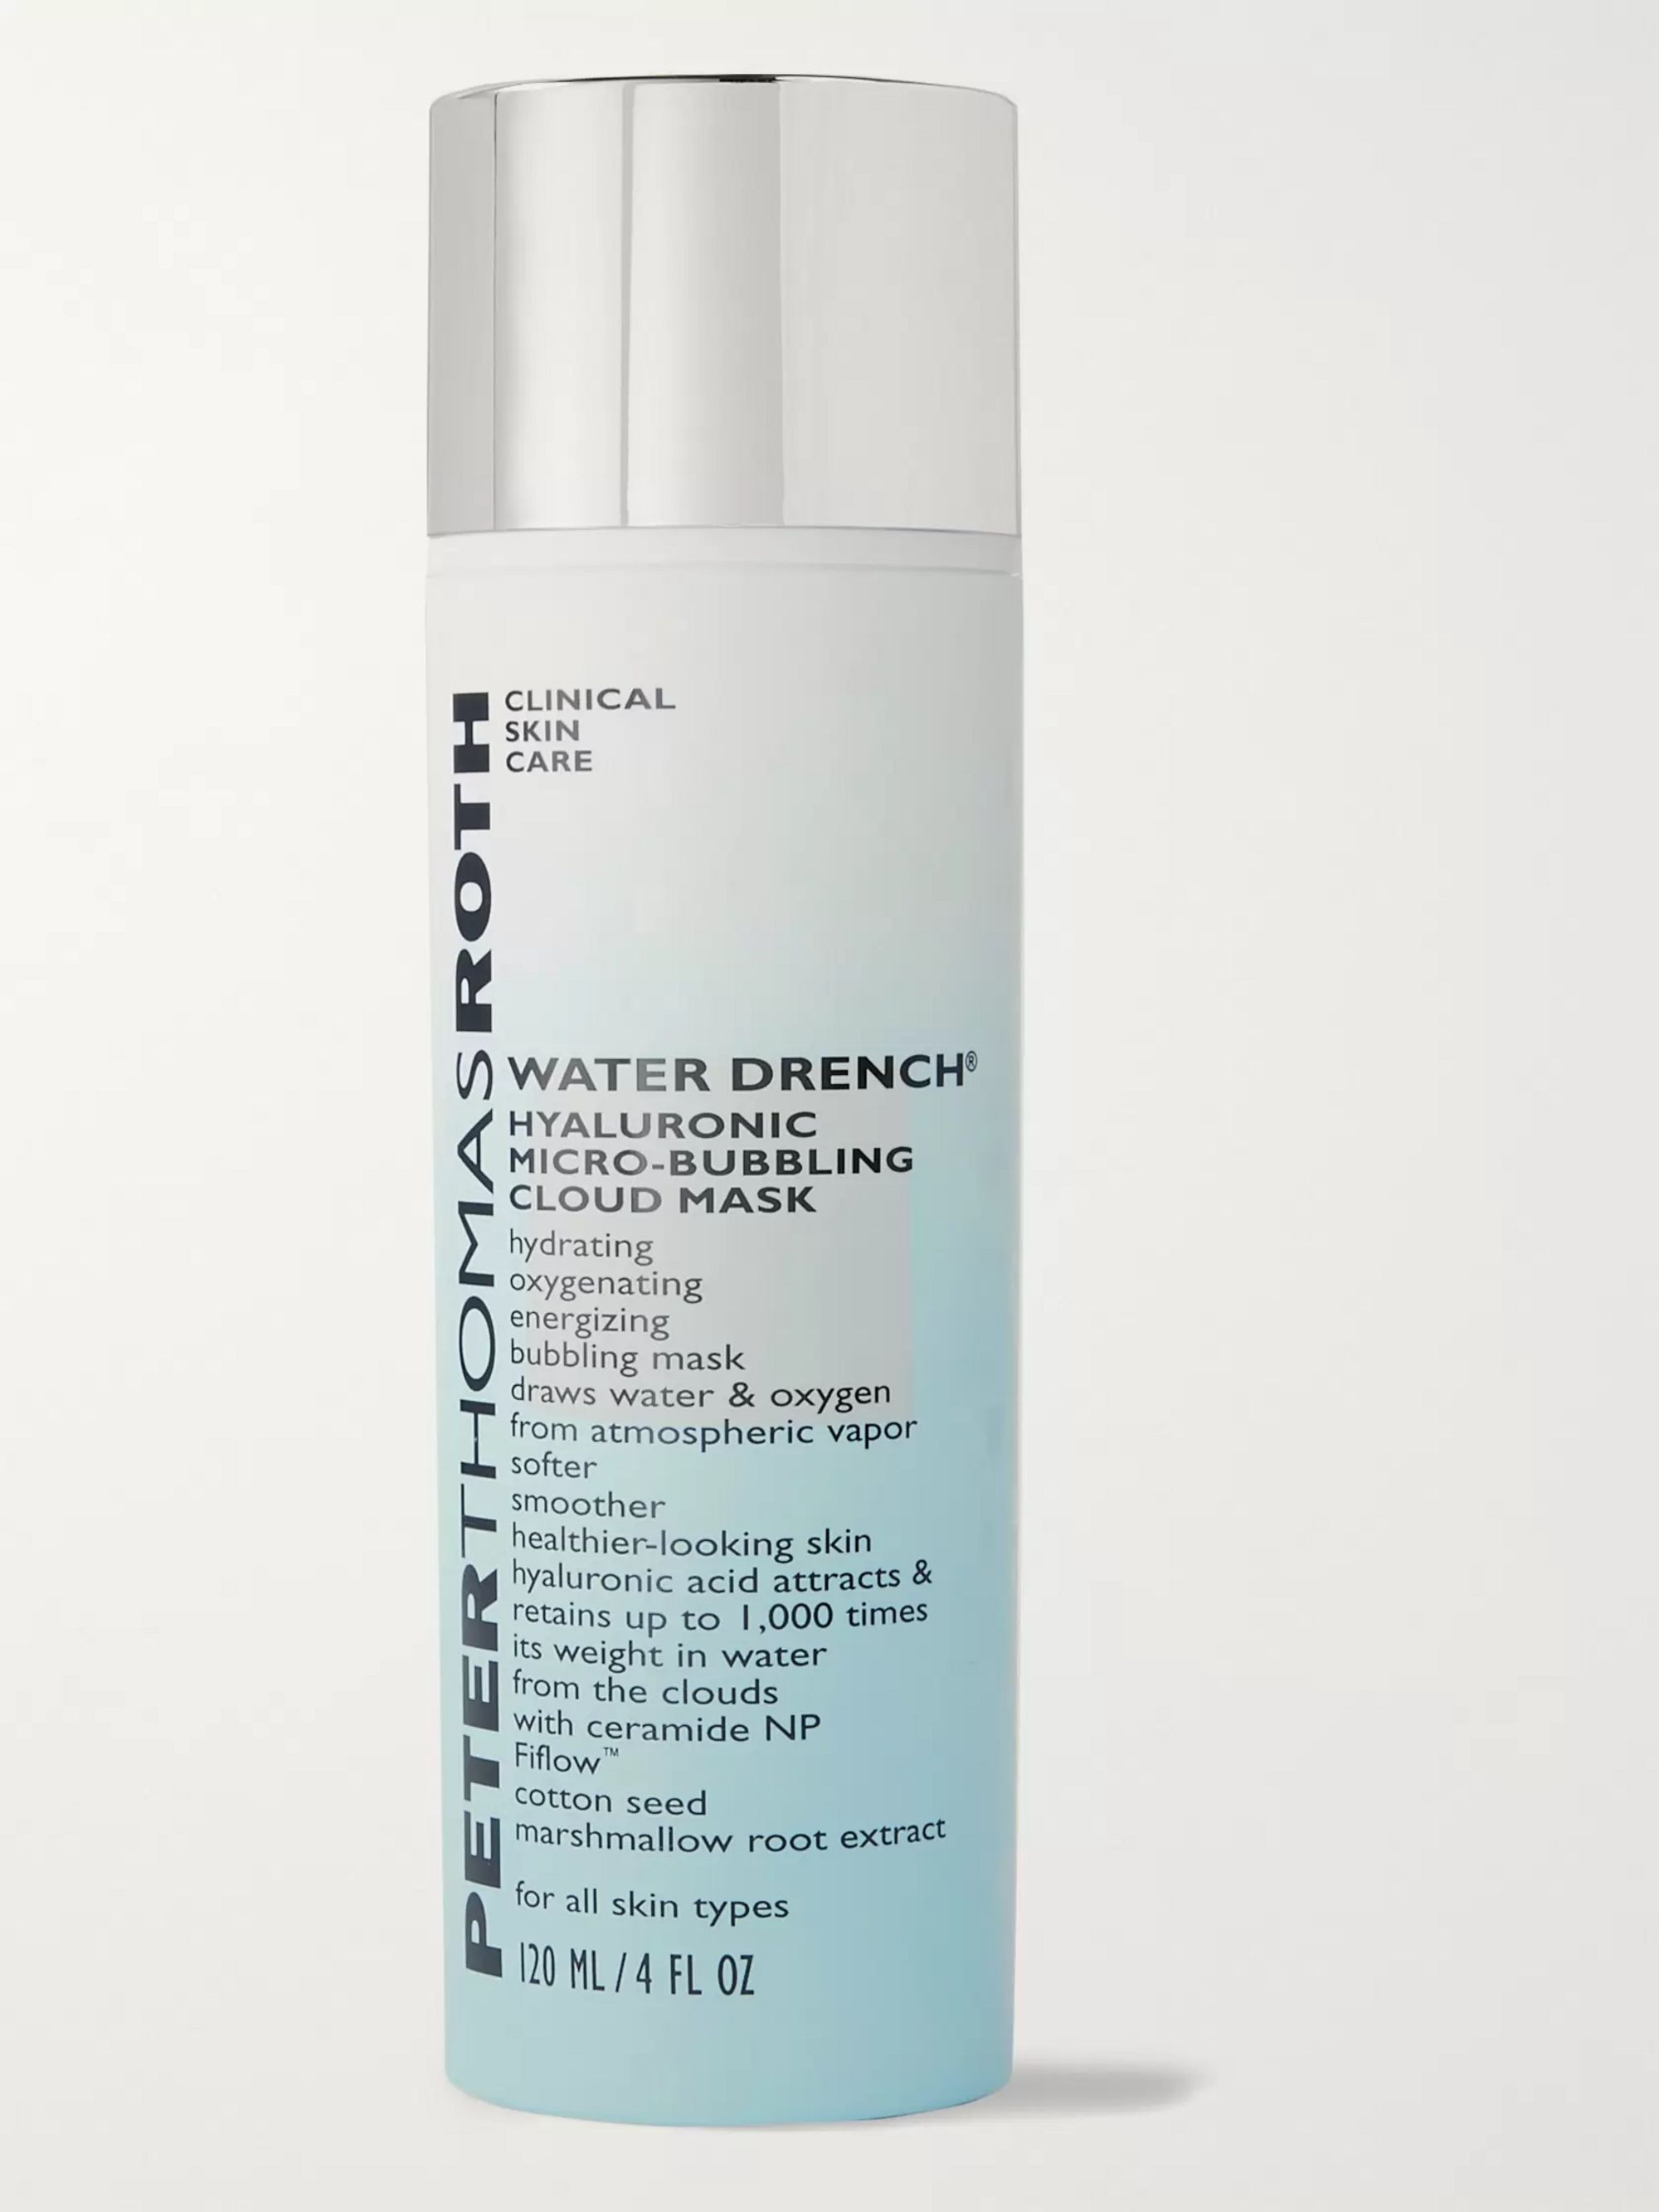 PETER THOMAS ROTH Water Drench Hyaluronic Micro-Bubbling Cloud Mask, 120ml